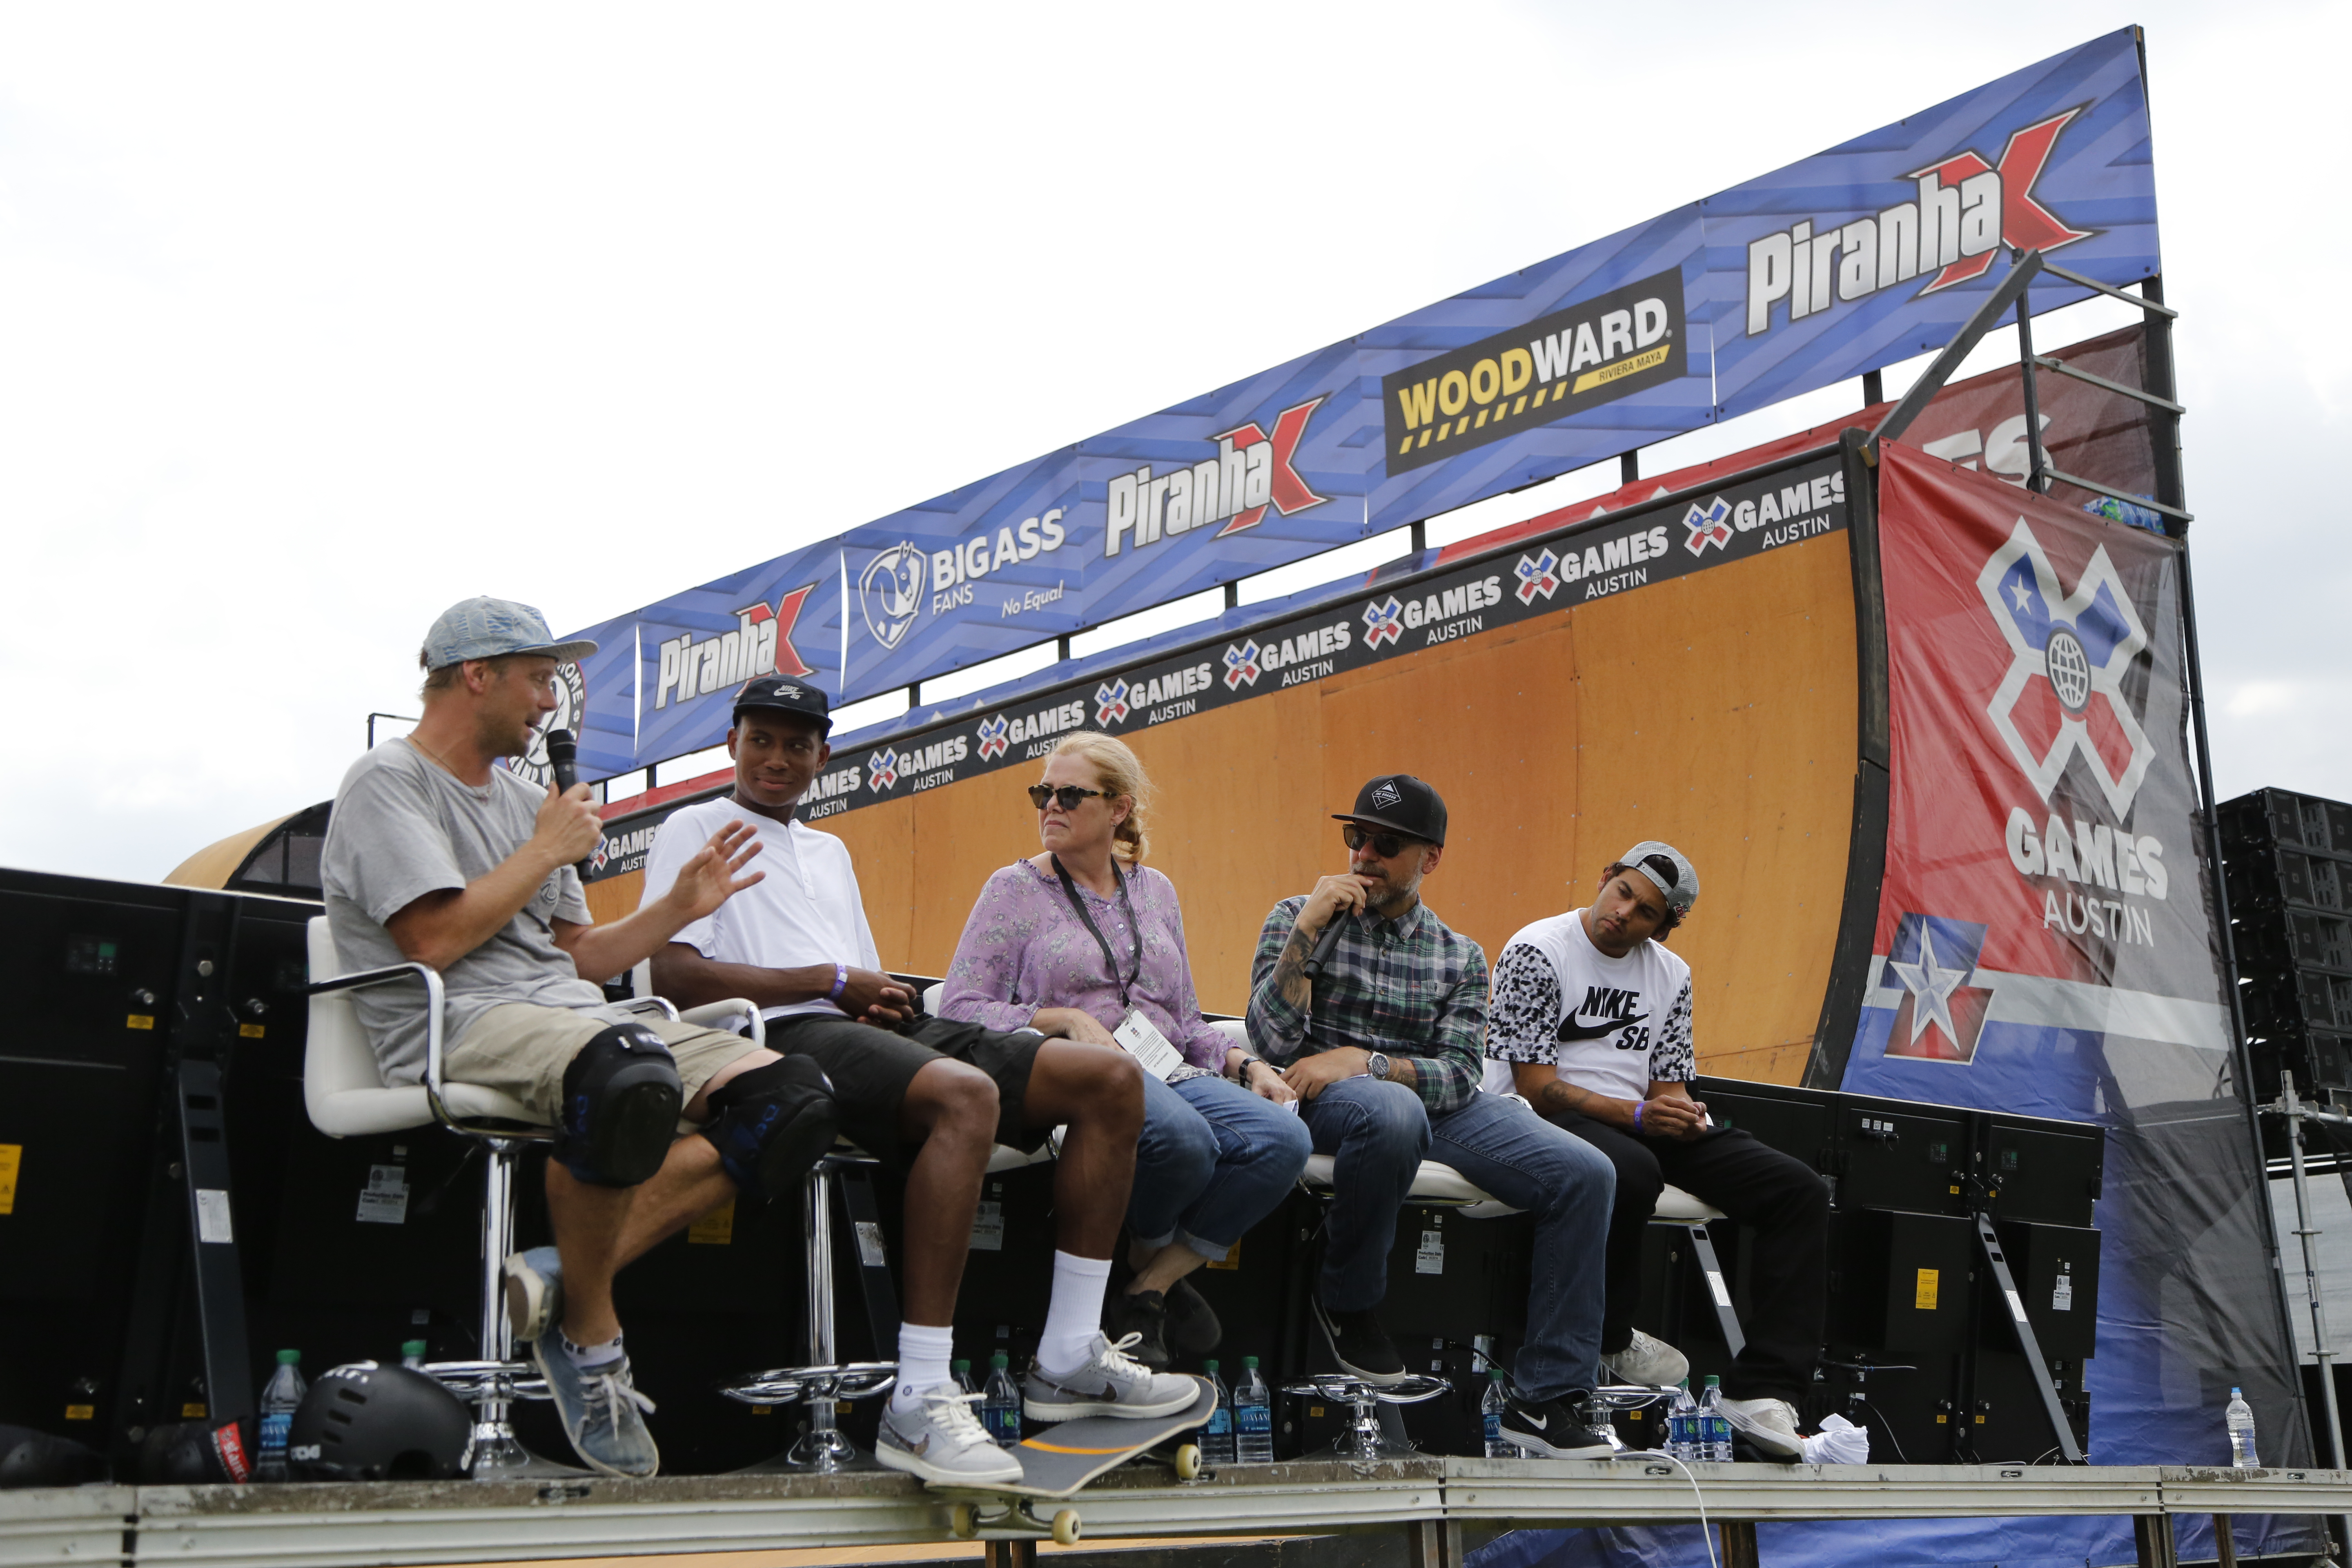 Renton Millar, Ishod Ware, Betsy Gordon, Ryan Clements, and Paul Rodriguez during a panel at Innoskate X Games